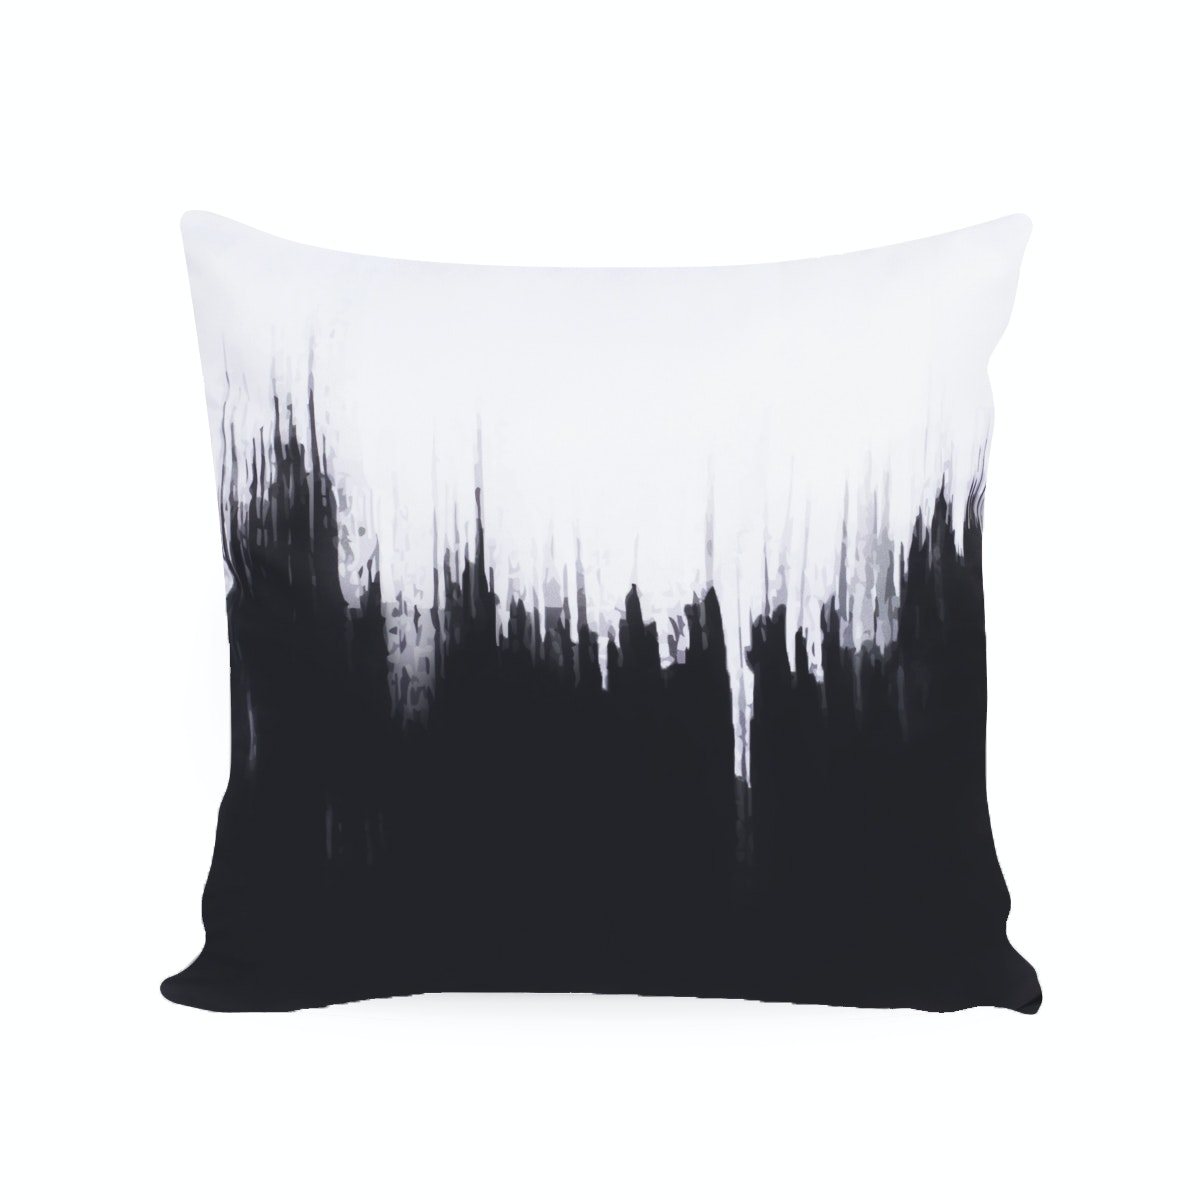 On&On Abstract Cushion Cover 40x40cm